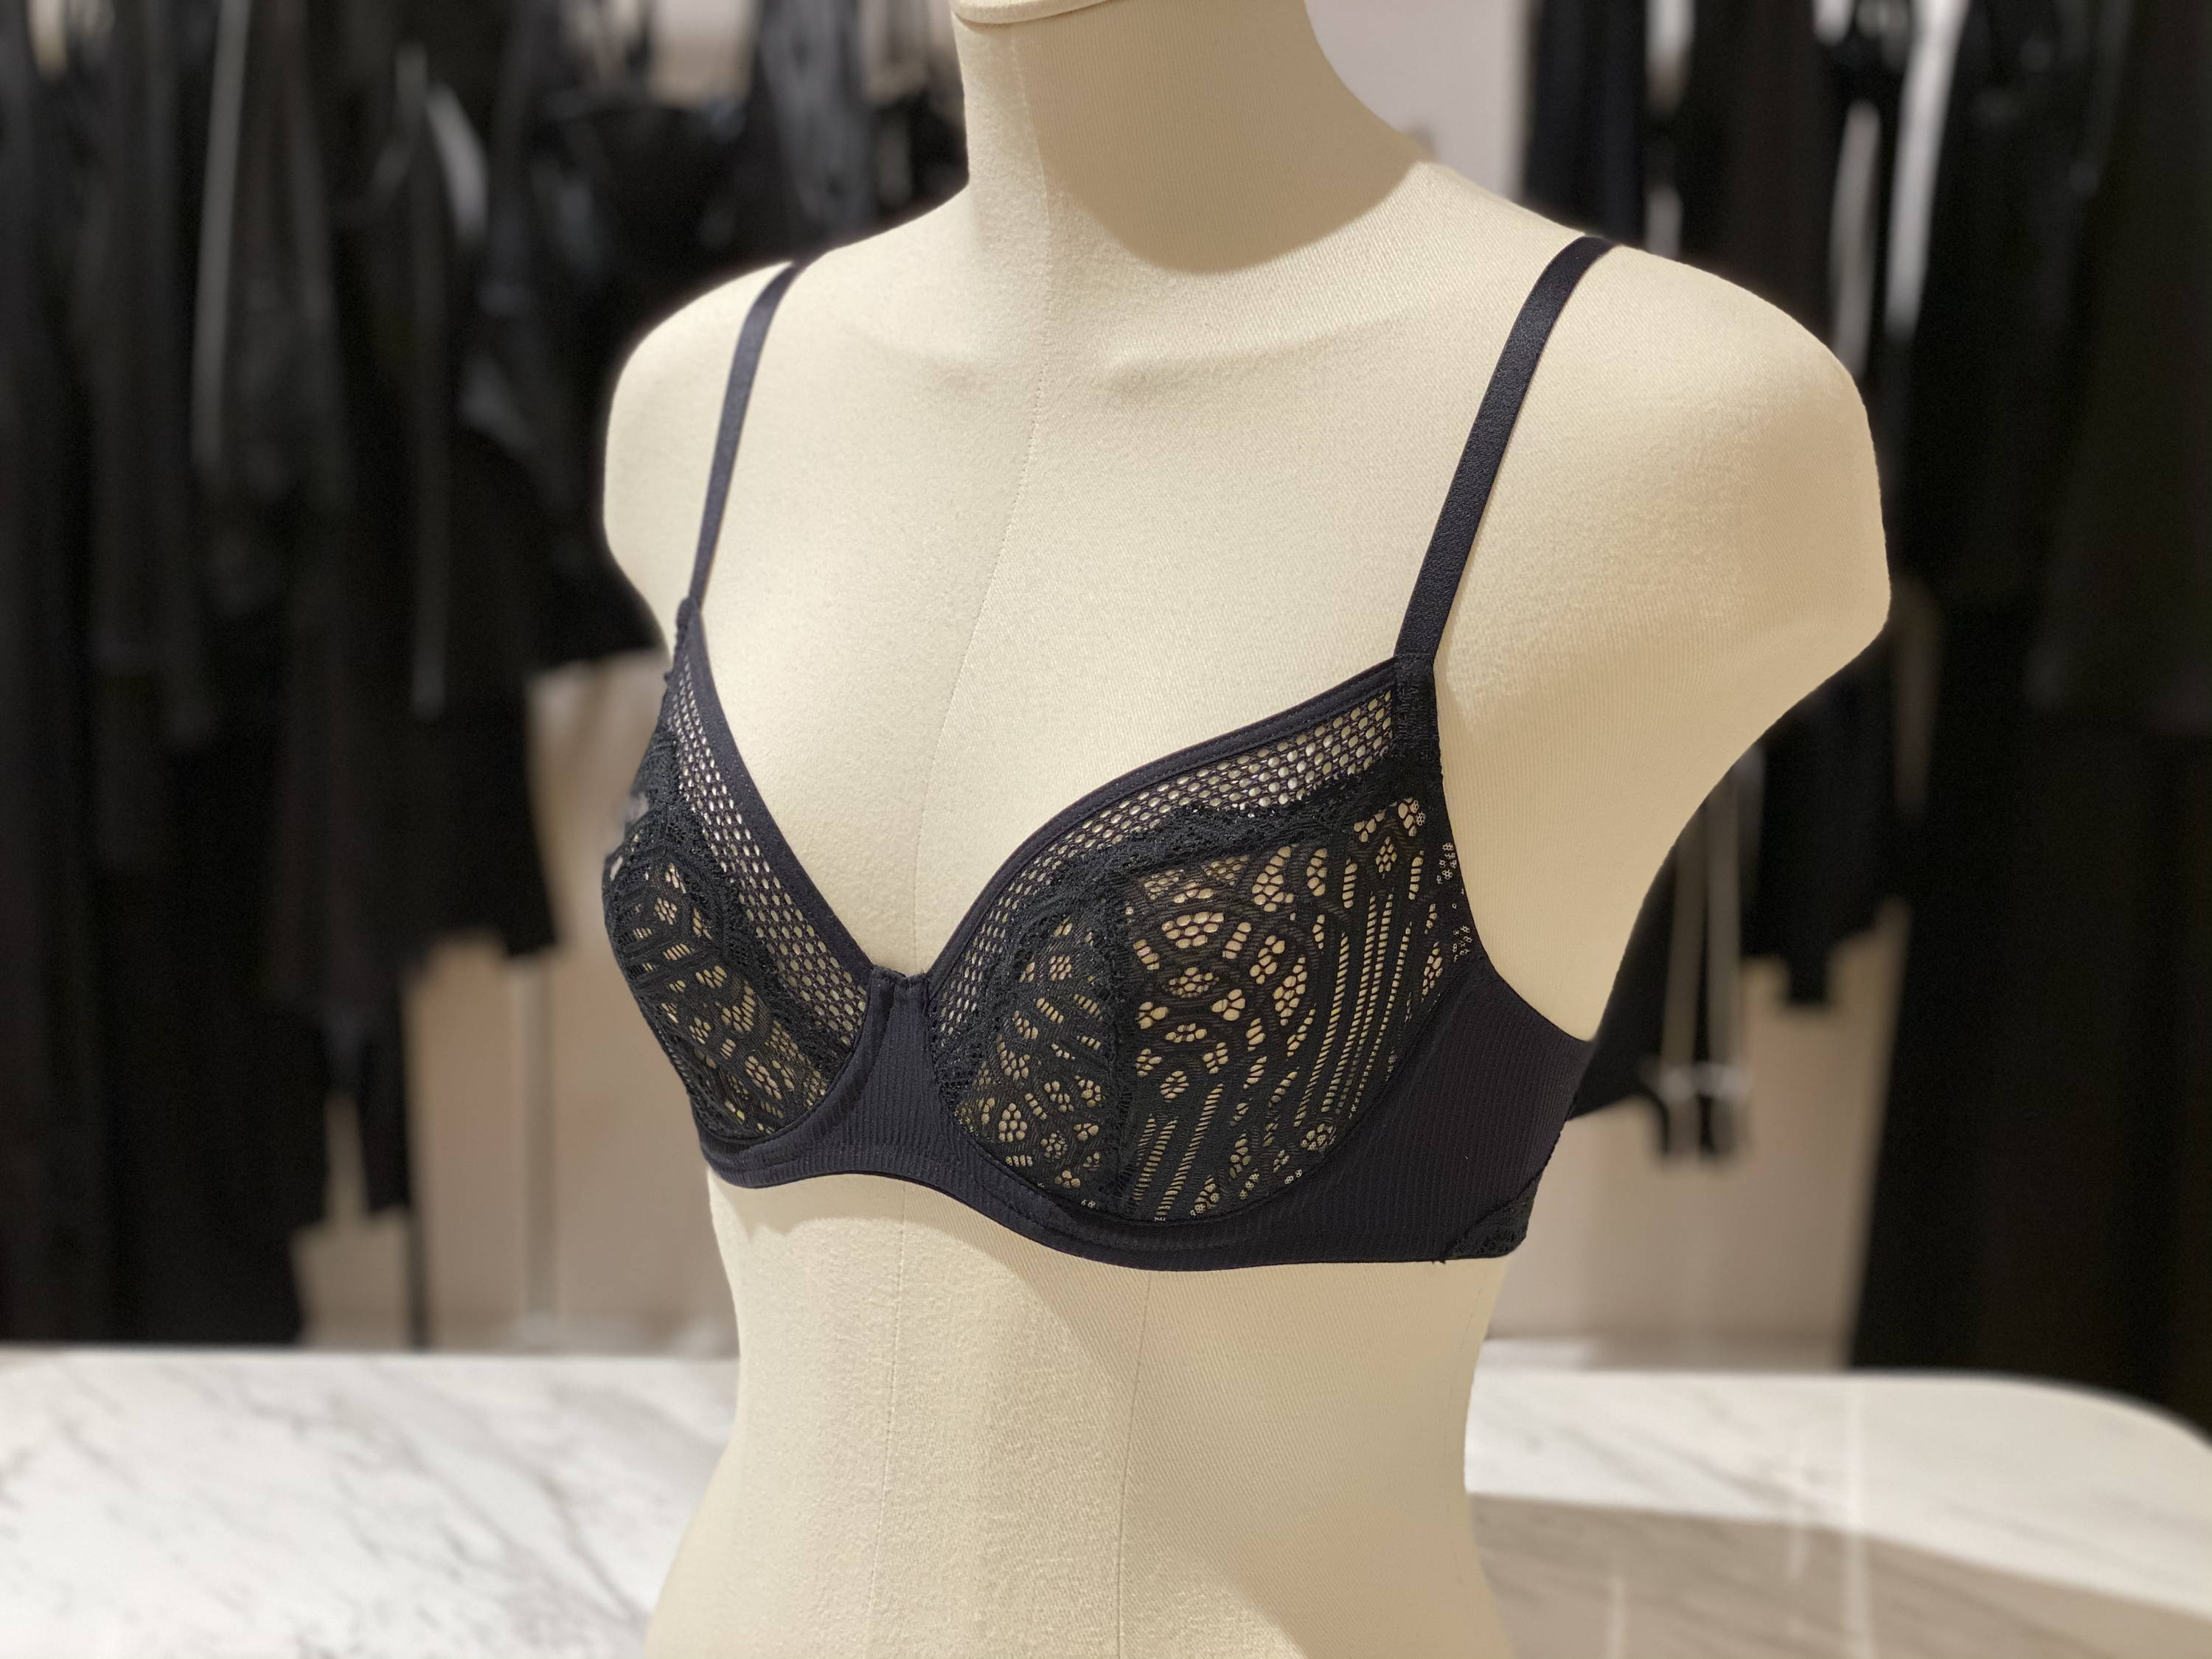 Hanro Nala Underwired Bra Sheer lingerie